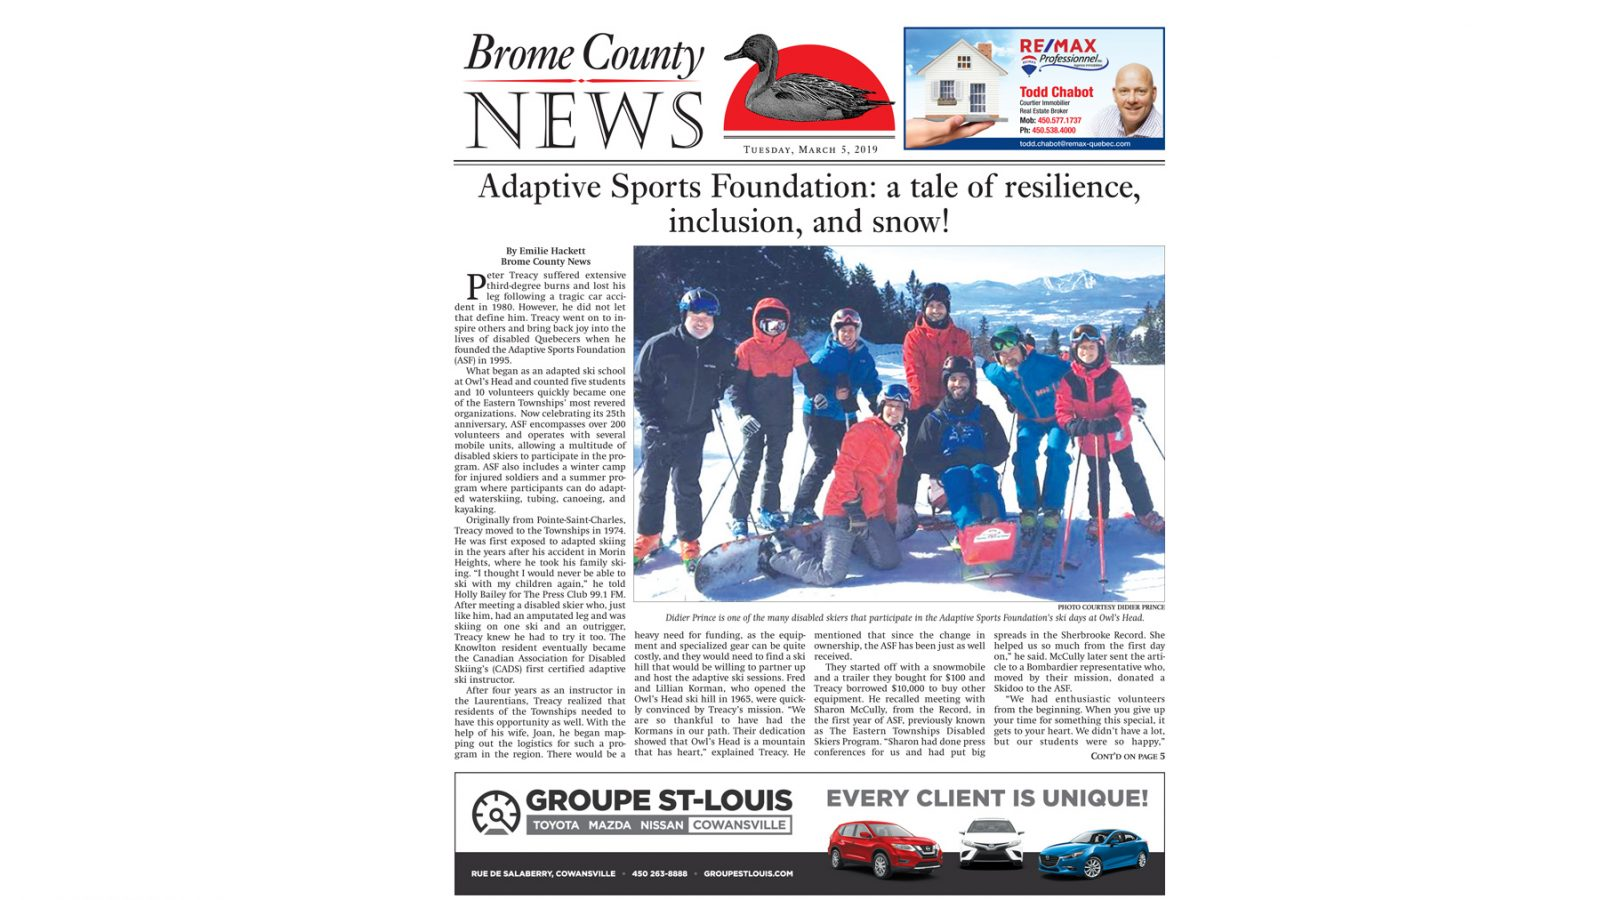 Brome County News – March 5, 2019 edition